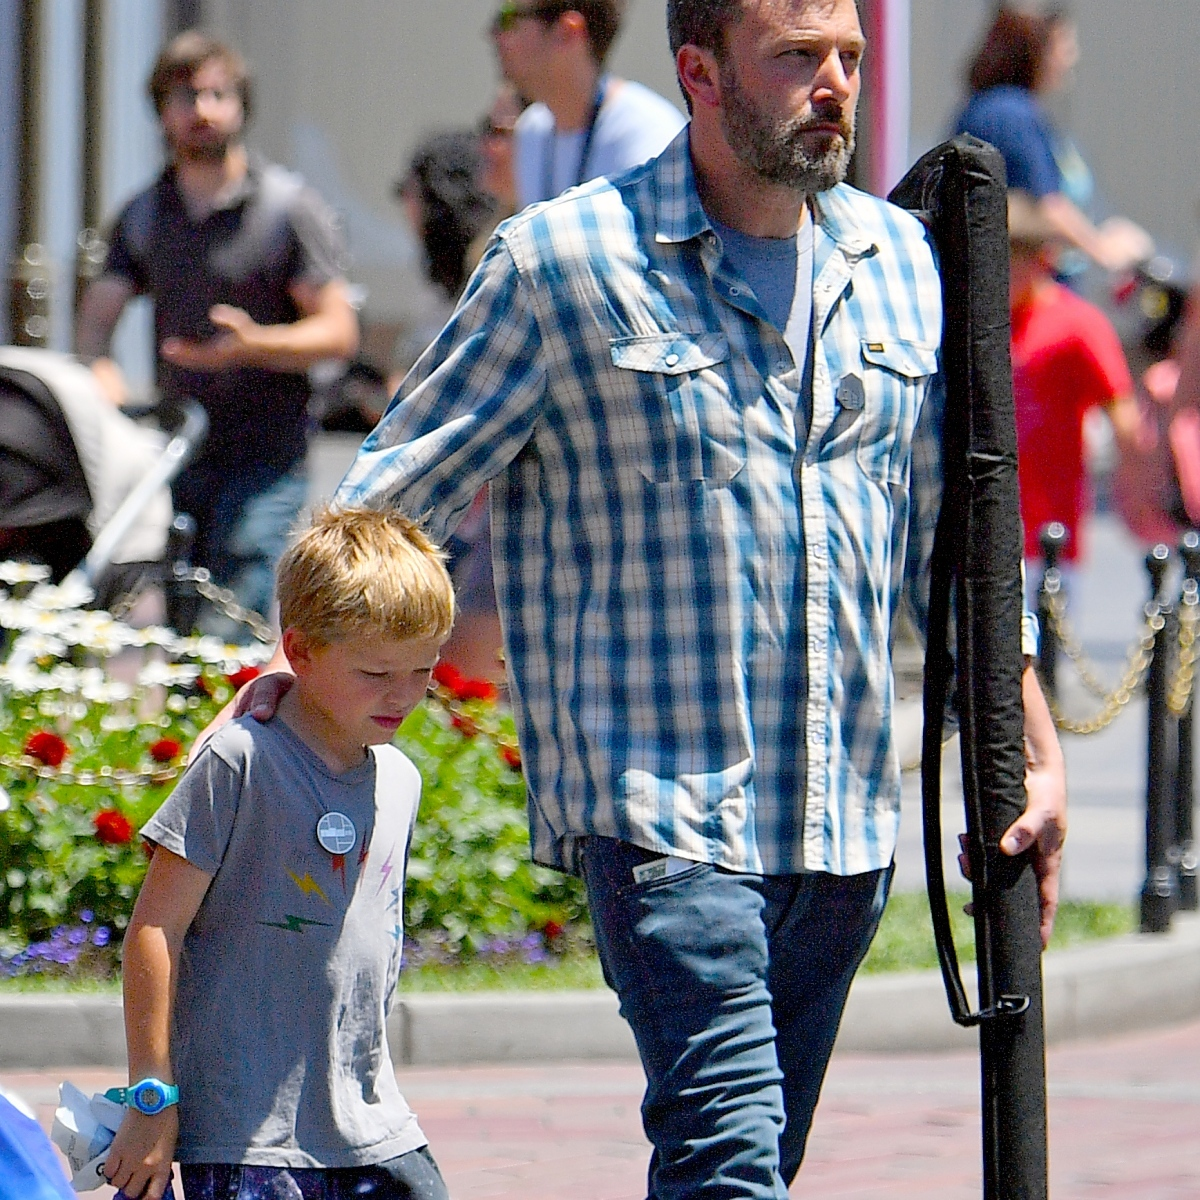 Ben Affleck Celebrates His Upcoming 47th Birthday With Son Samuel at the Happiest Place on Earth, Disneyland — Pics!